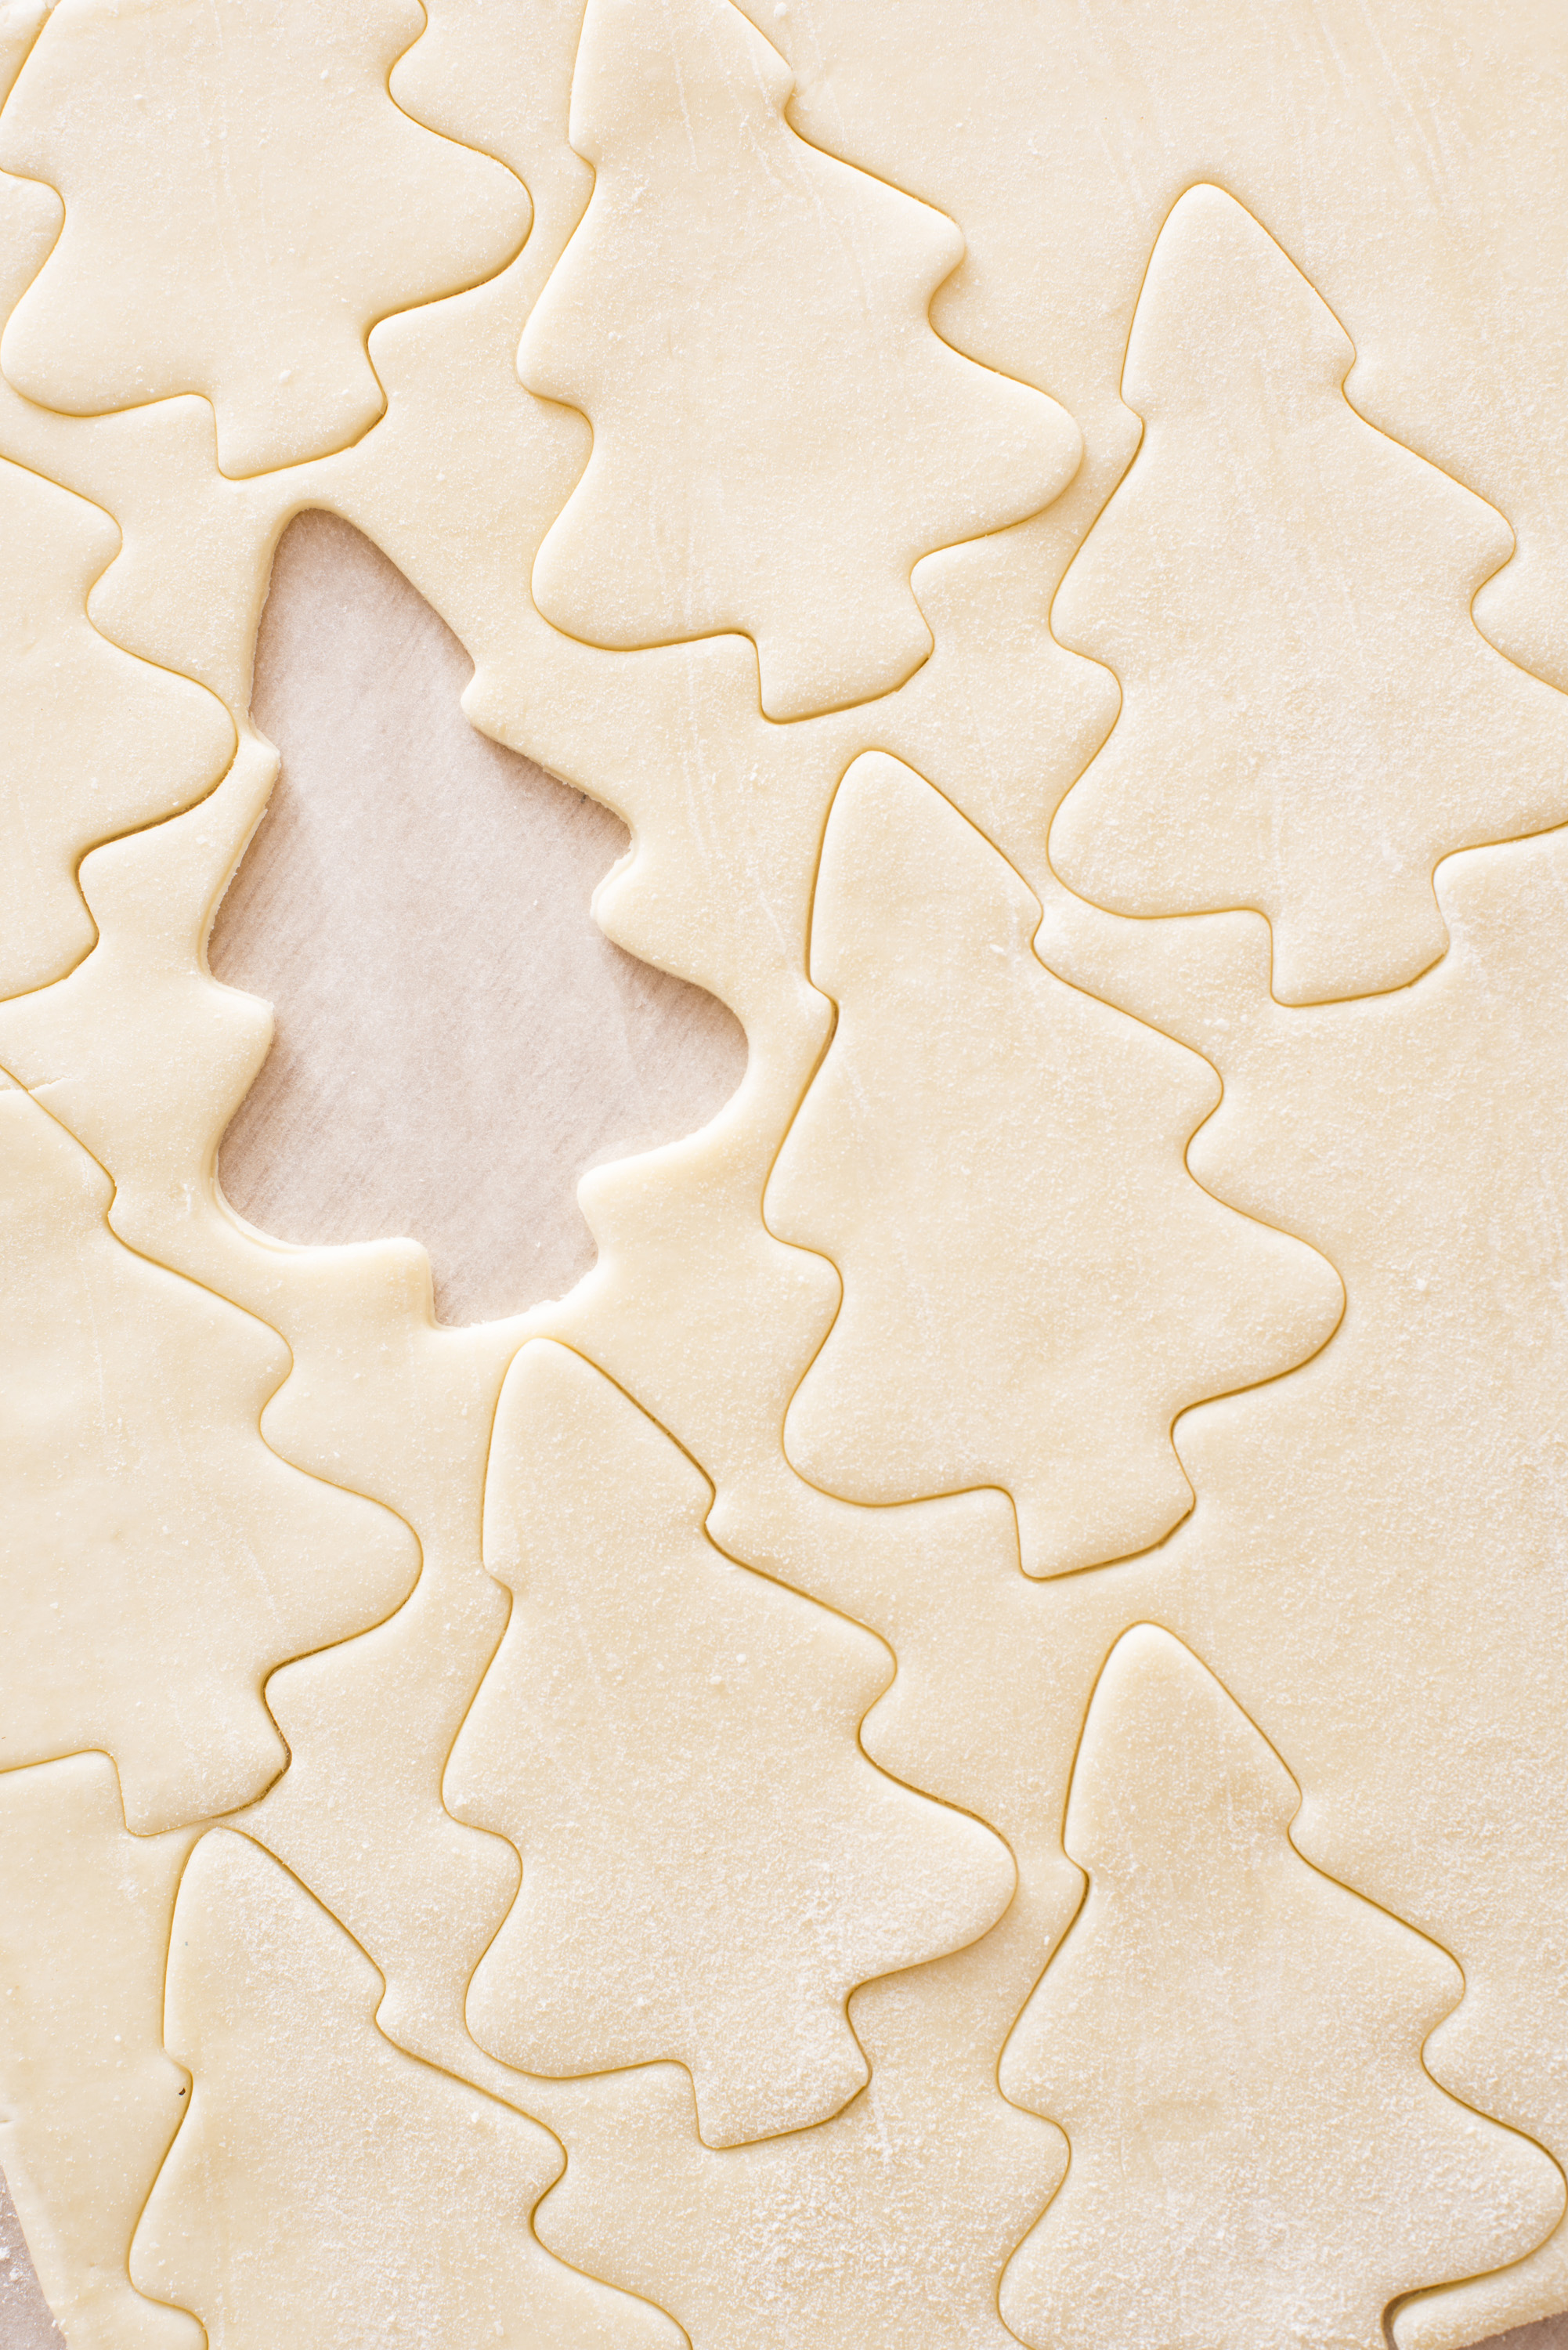 Photo Of Baking Homemade Christmas Tree Shaped Cookies Free